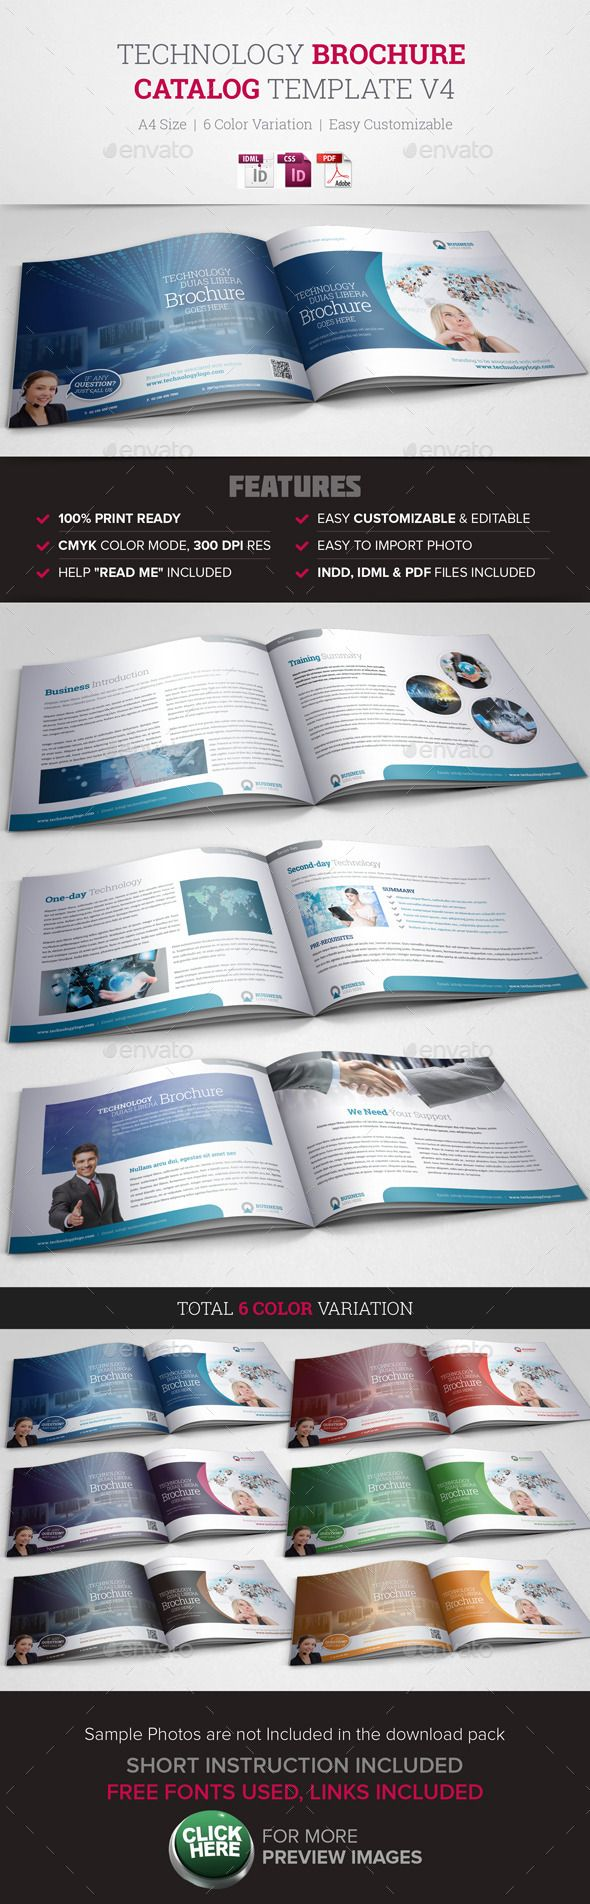 Technology Brochure Catalog Template V4